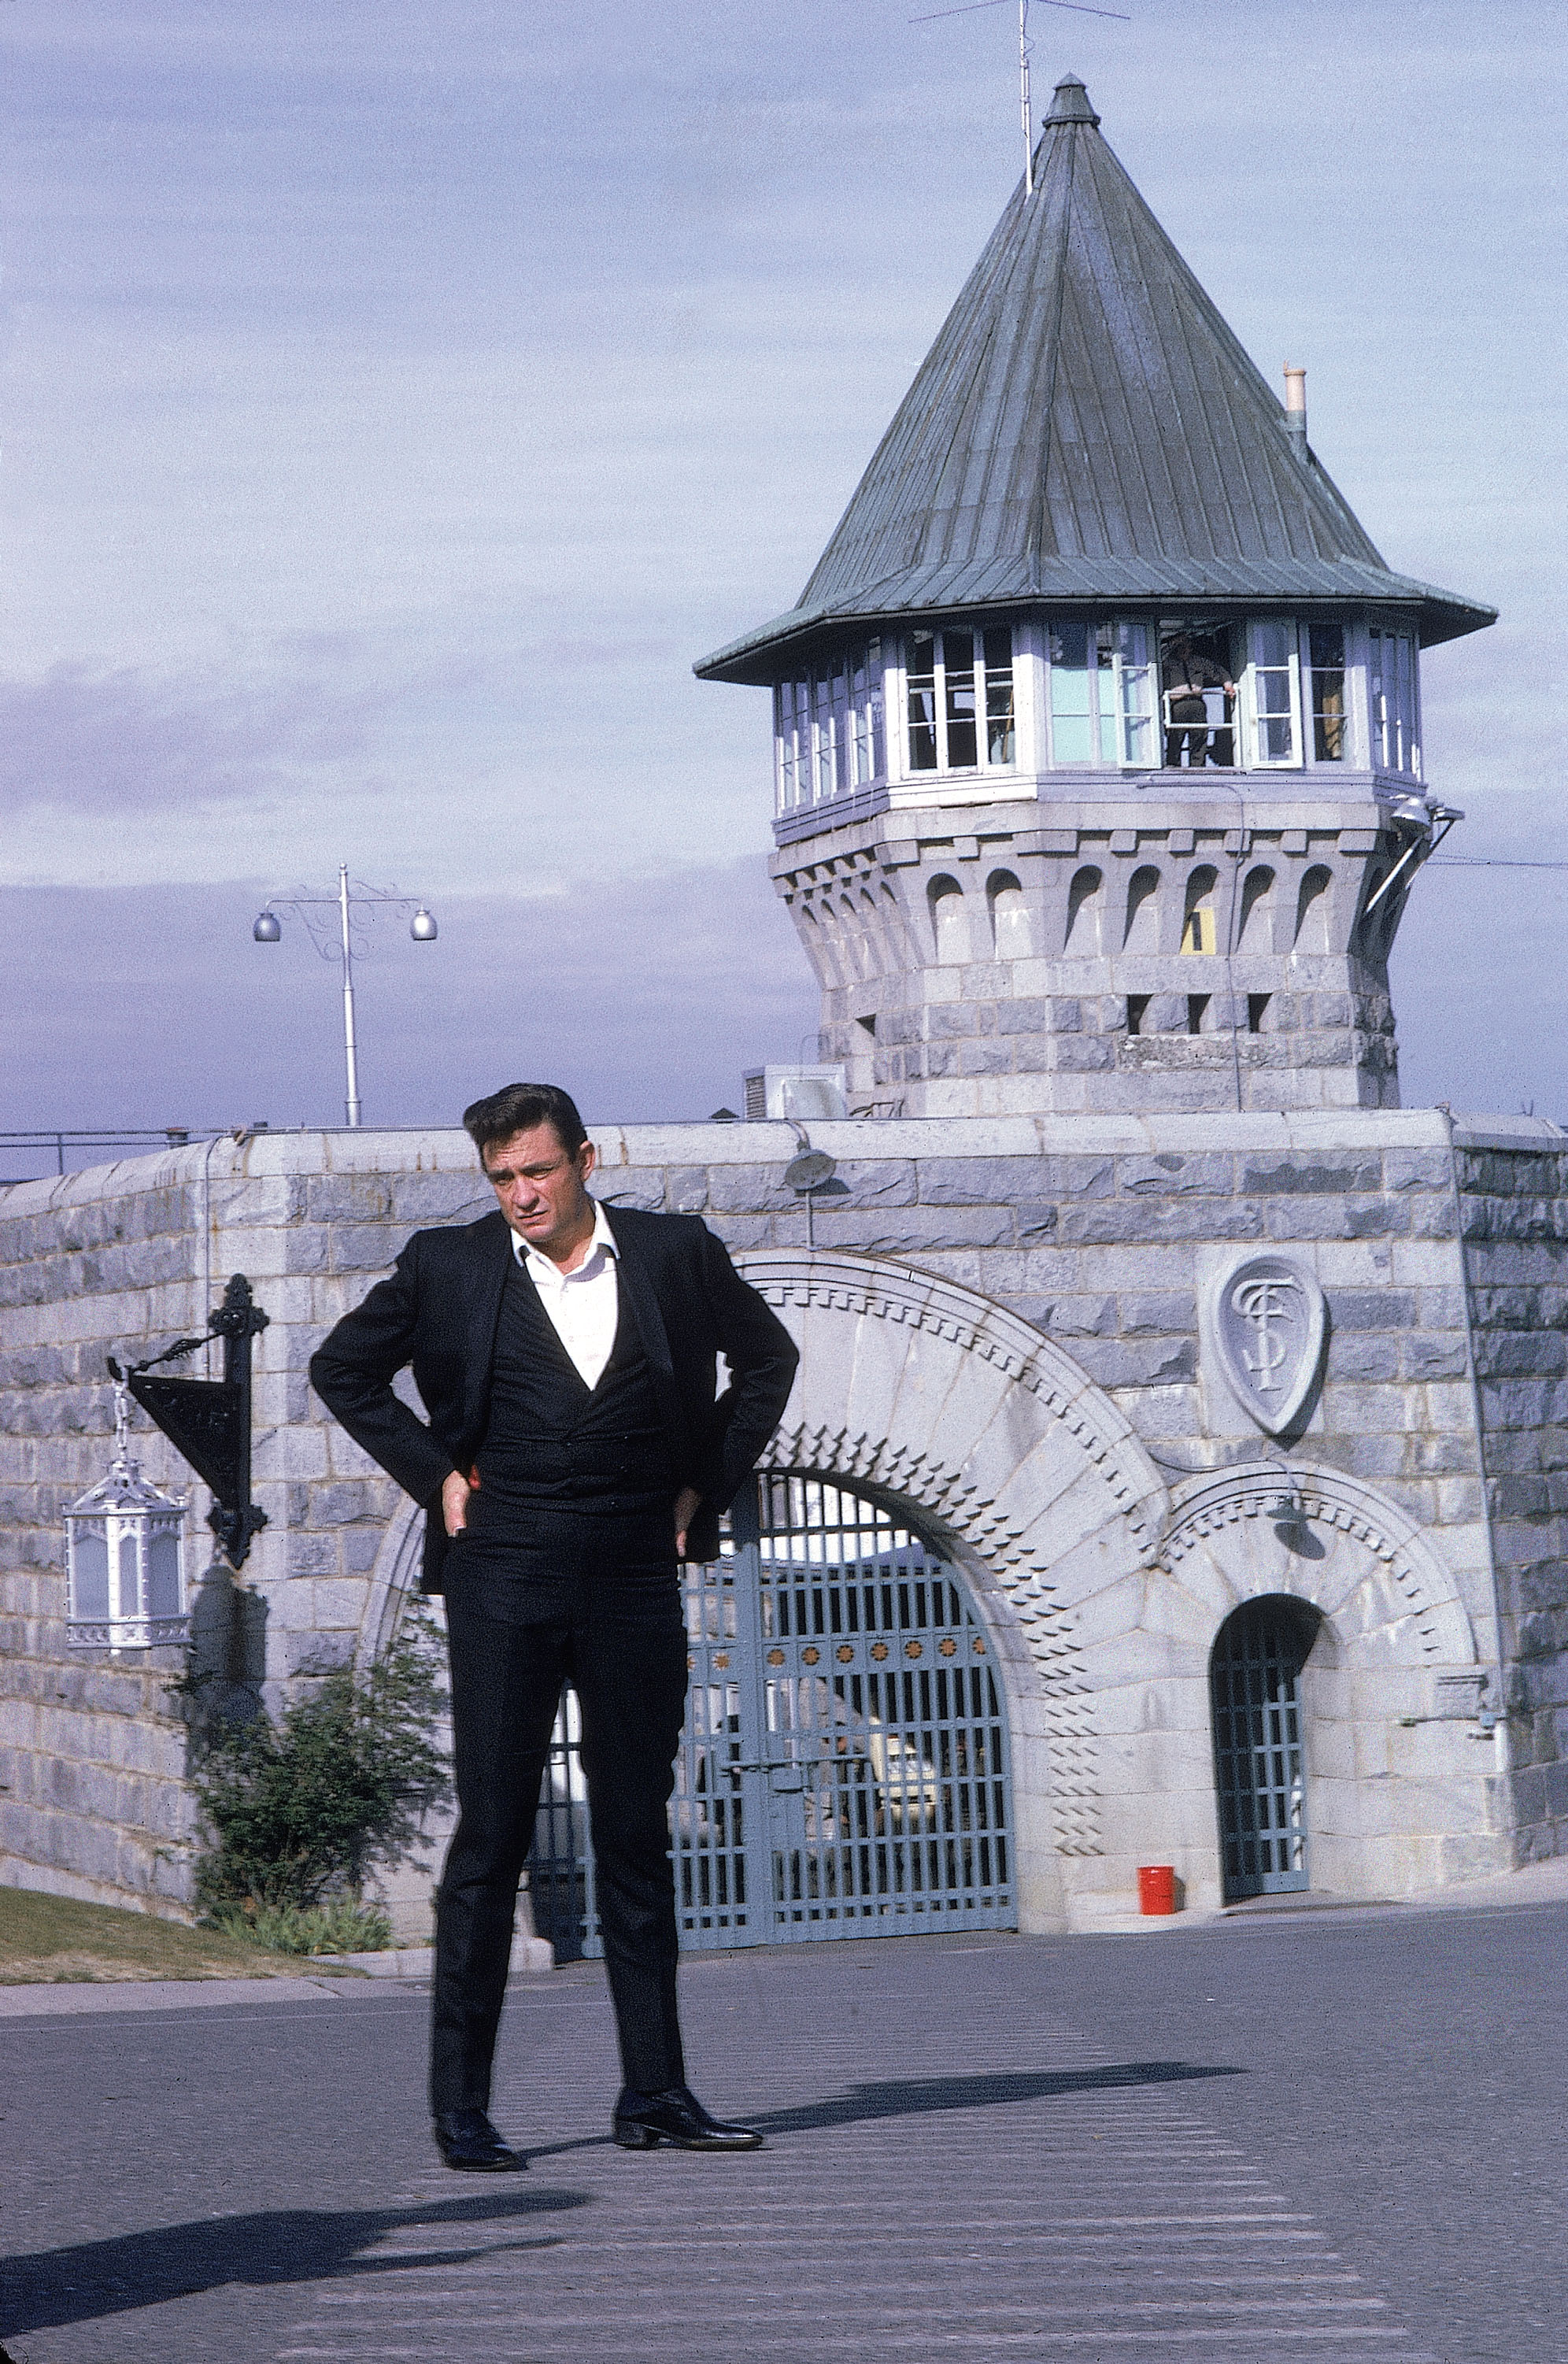 Country singer Johnny Cash posing outside the Folsom Prison before his performance. (Credit: Dan Poush/AP Photo)